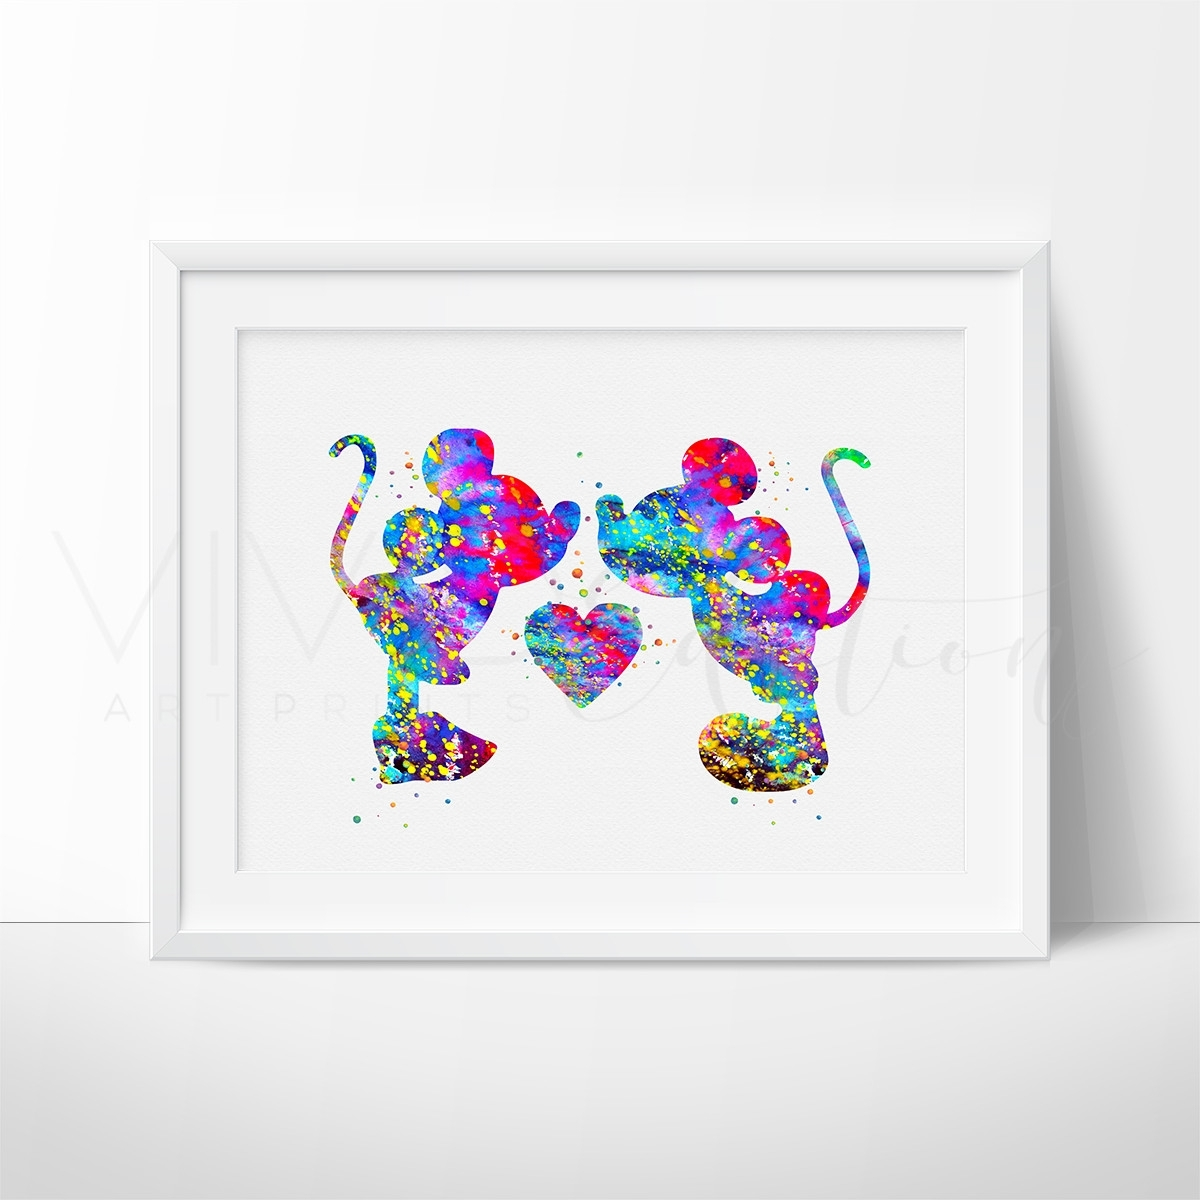 Mickey & Minnie Mouse Watercolor Art Print | Watercolor Images Within Best And Newest Mickey Mouse Canvas Wall Art (View 9 of 15)